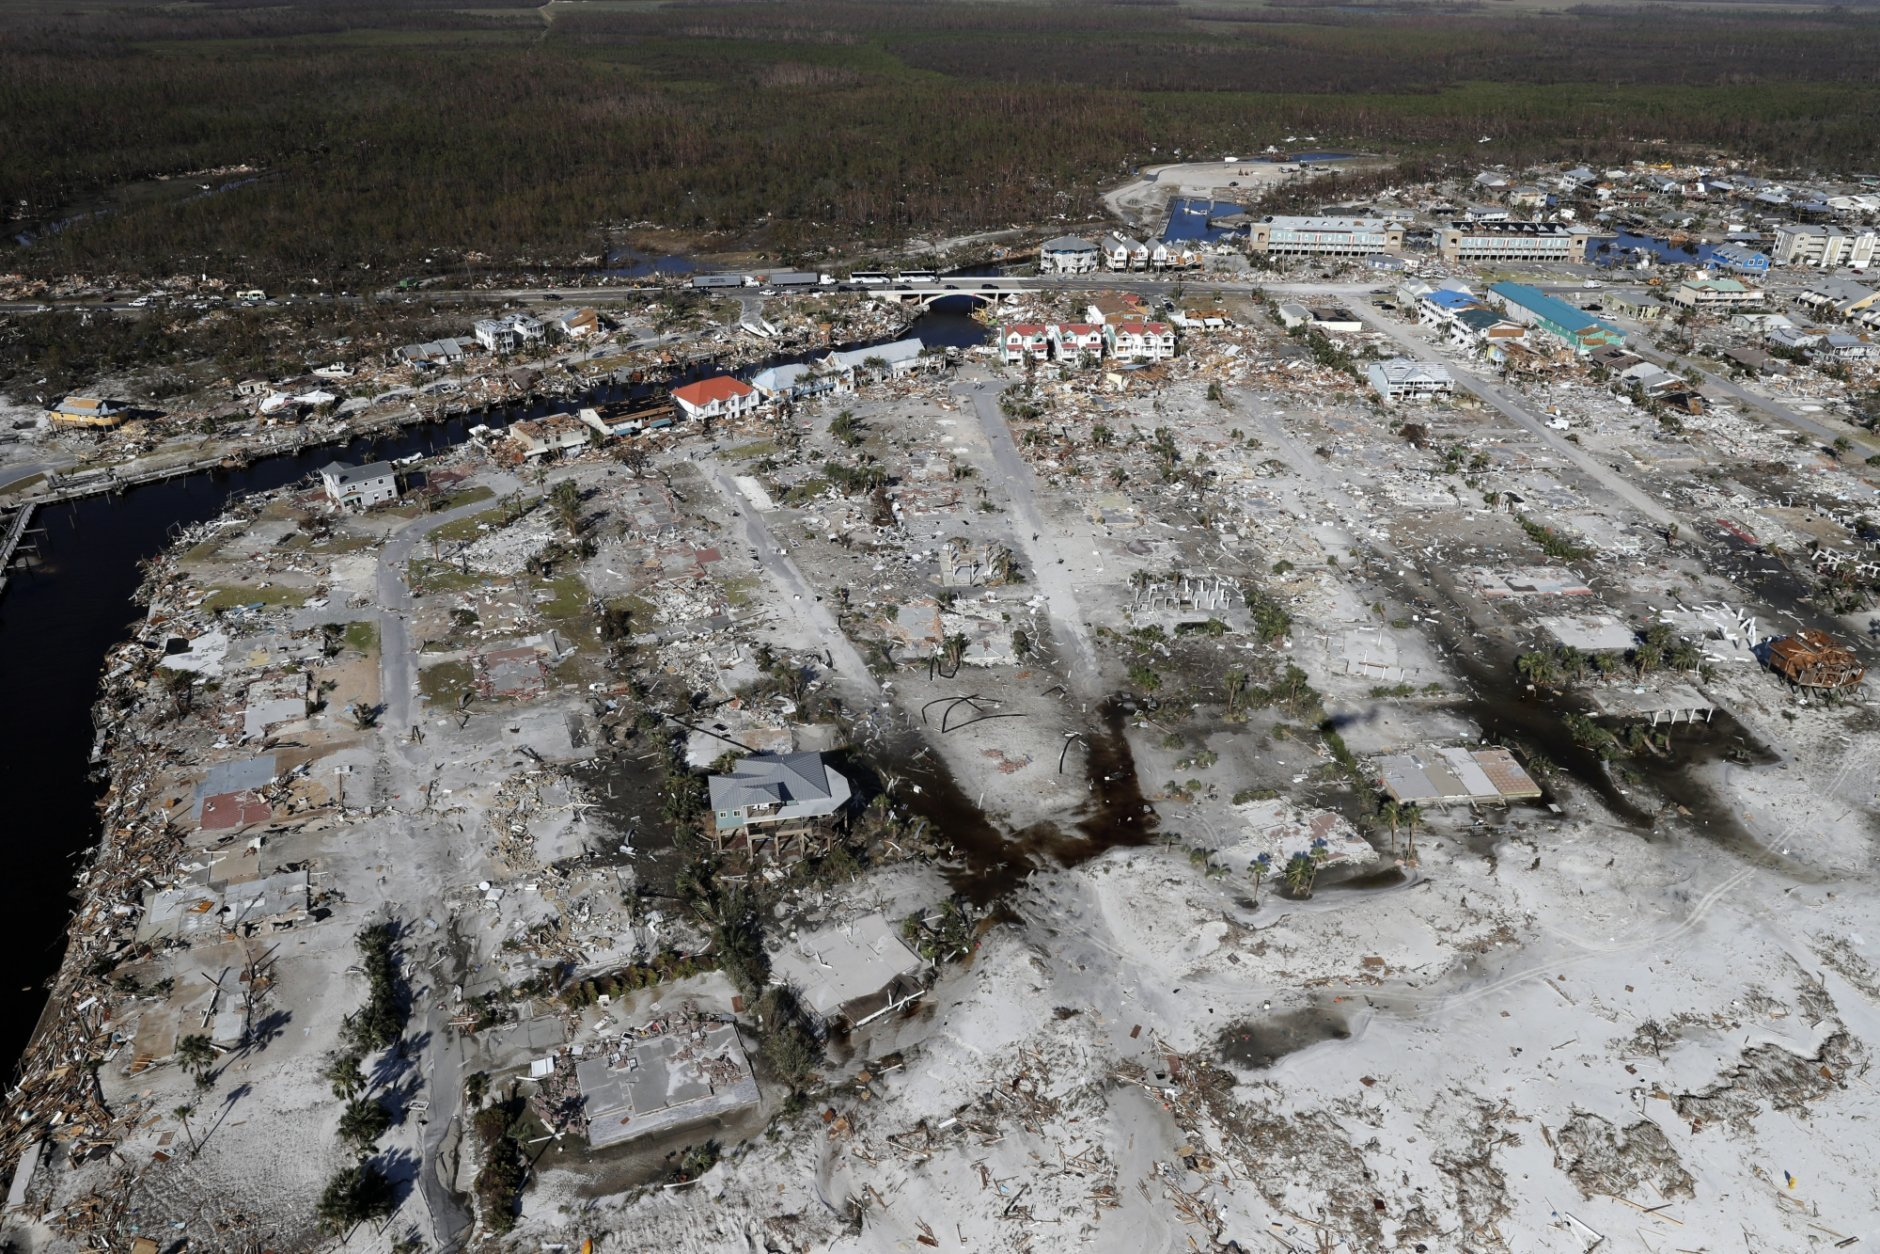 Devastation from Hurricane Michael is seen in this aerial photo over Mexico Beach, Fla., Friday, Oct. 12, 2018. (AP Photo/Gerald Herbert)